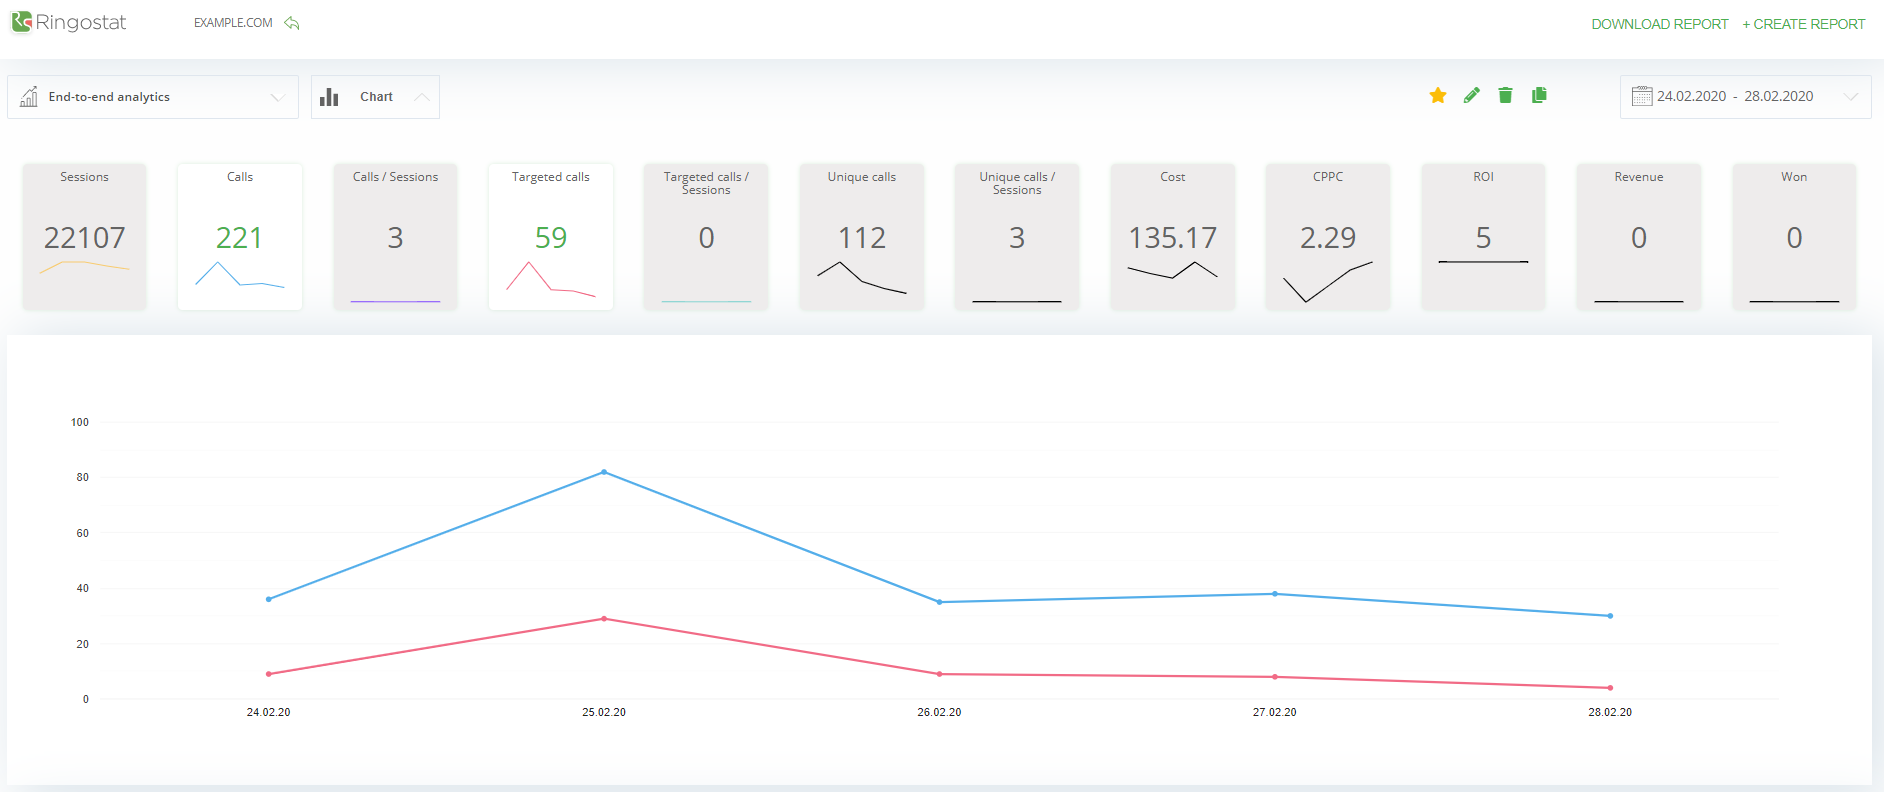 End-to-end analytics report that displays the conversion to calls